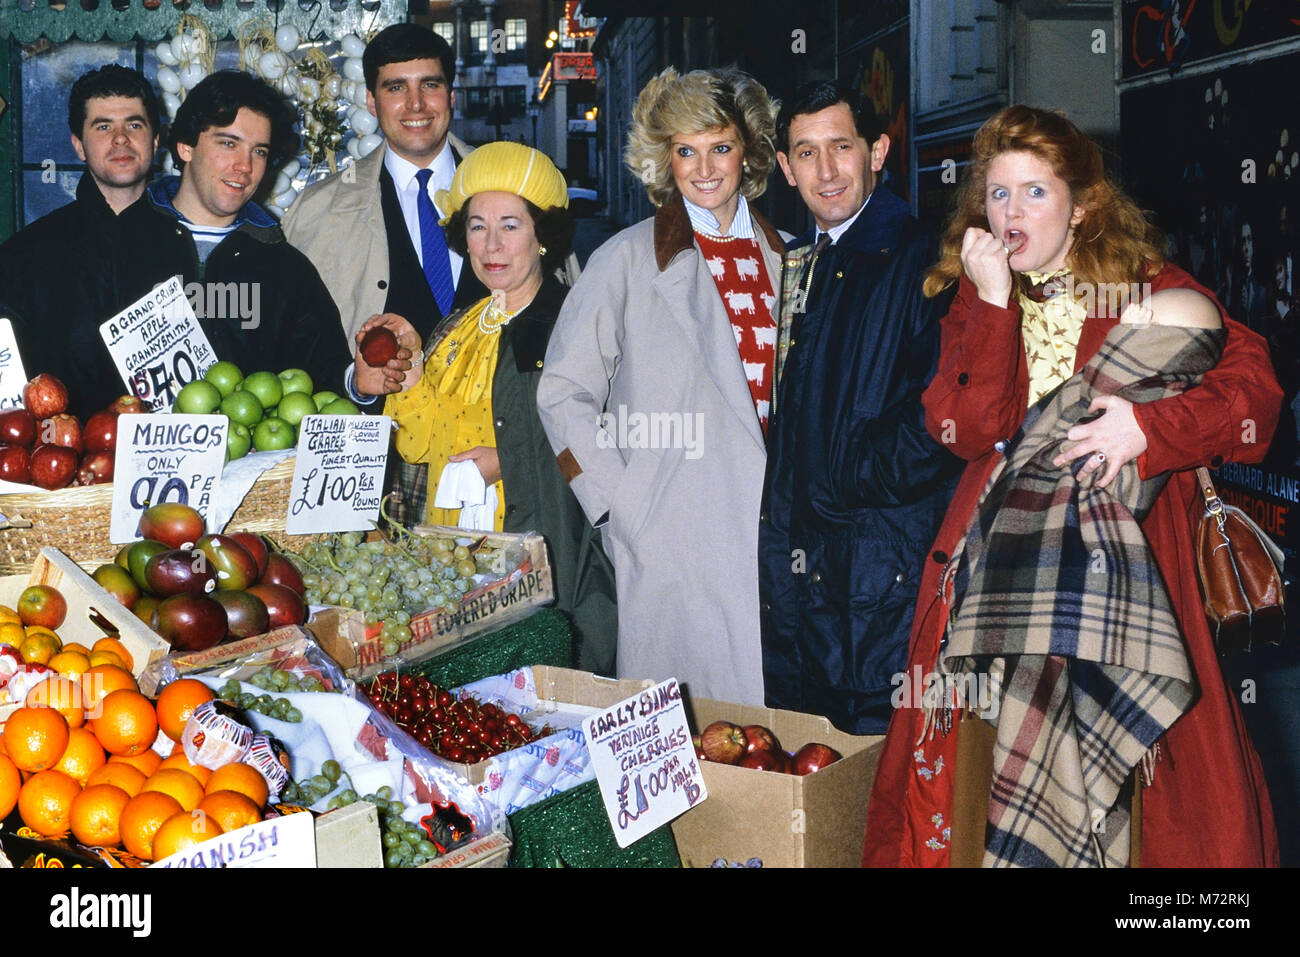 A group of British Royal Family look-alikes at a fruit market stall. London. England, UK - Stock Image